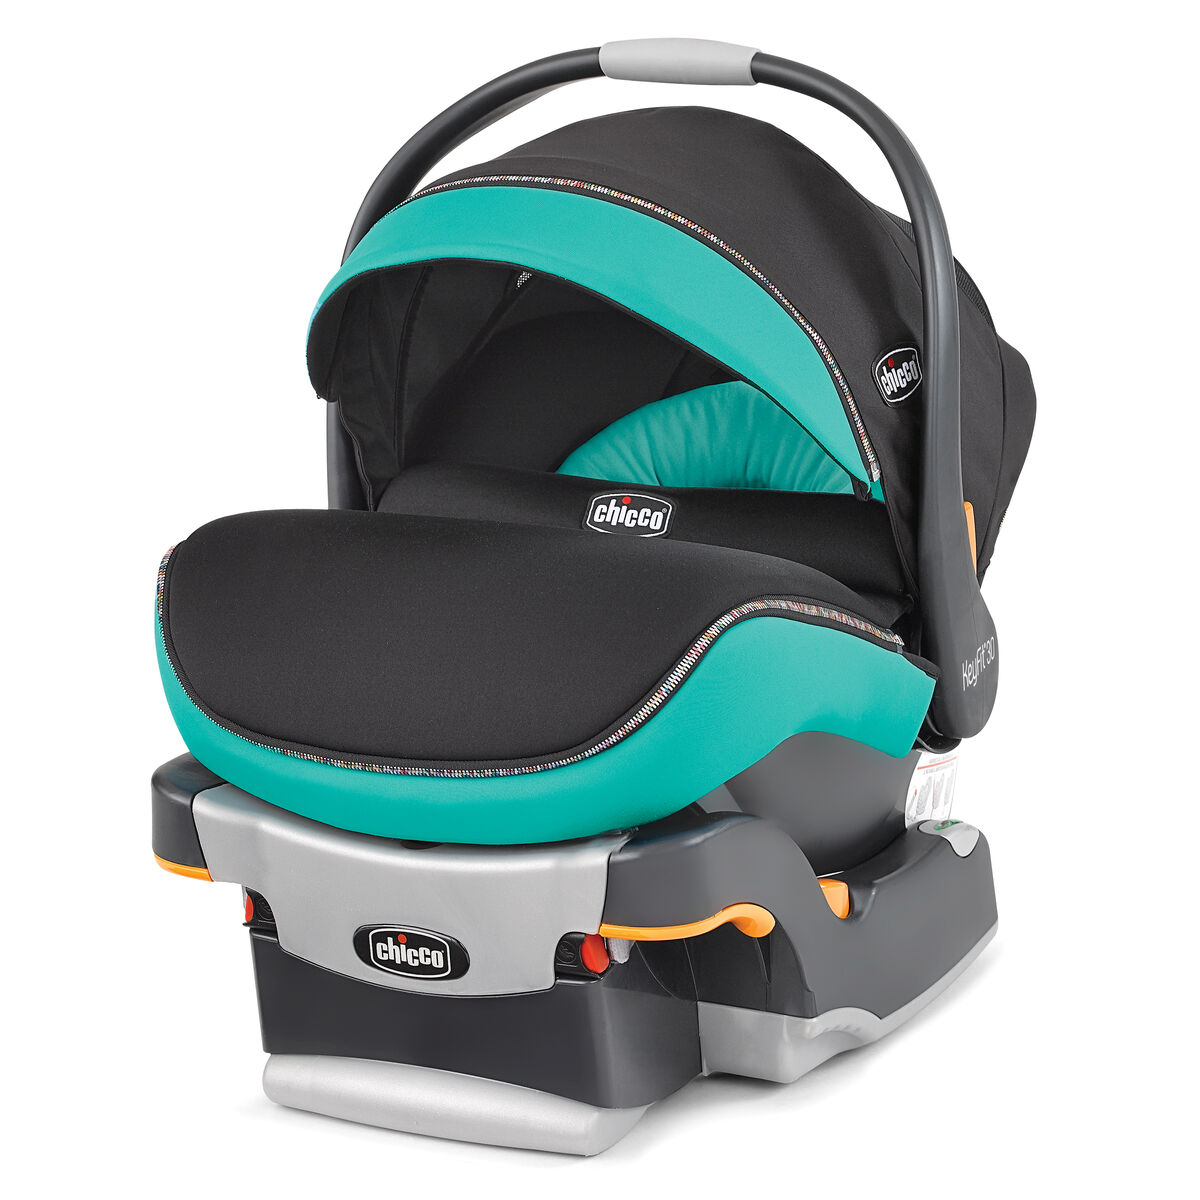 Chicco keyfit 30 zip infant car seat and base in teal aqua color emerald style